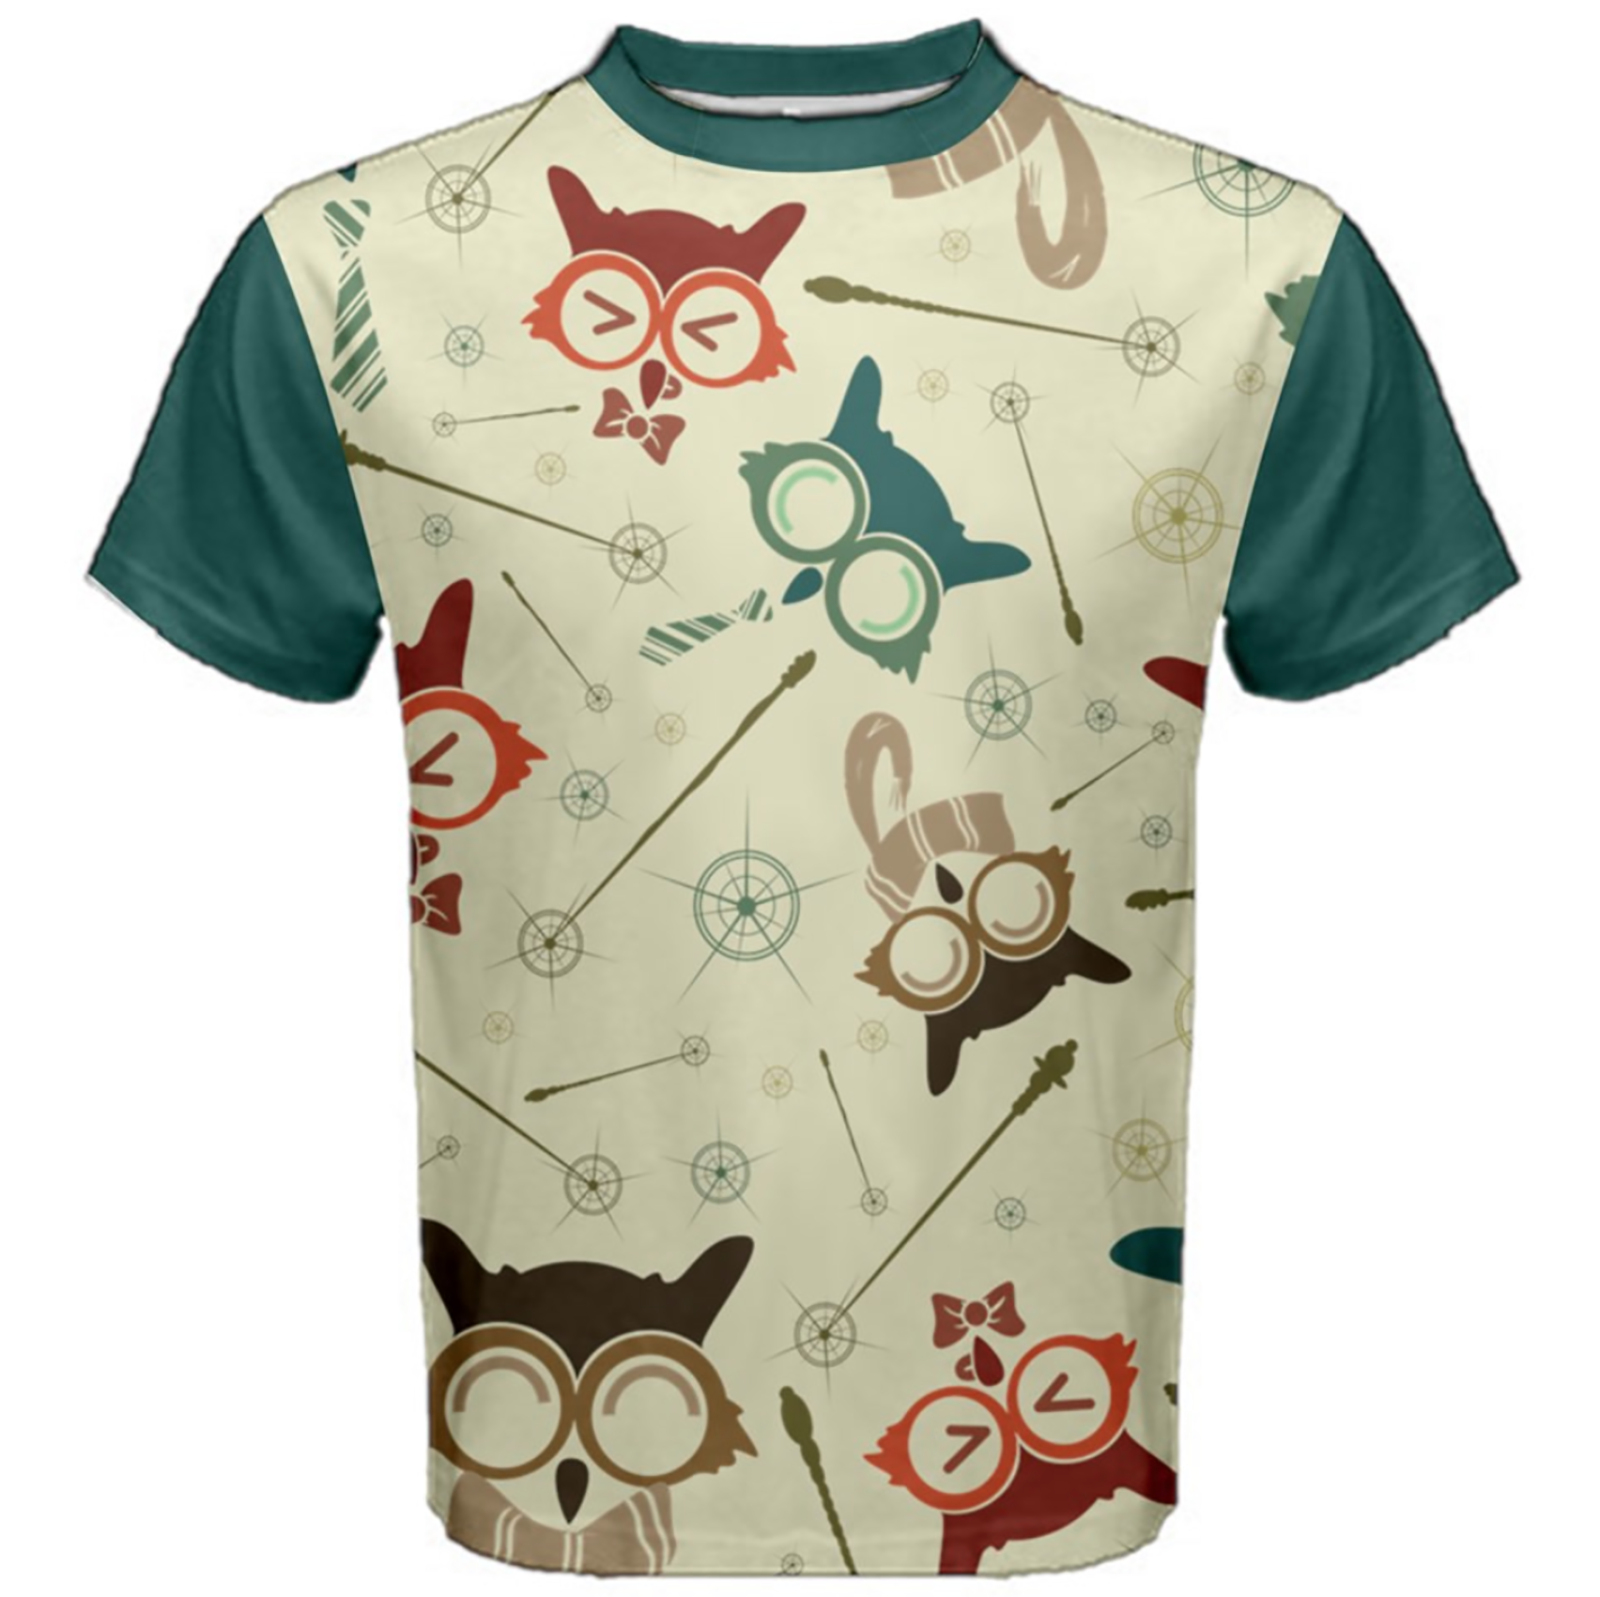 Vintage Emoji Owl Cotton Tee (Patterned- Blue Sleeves)